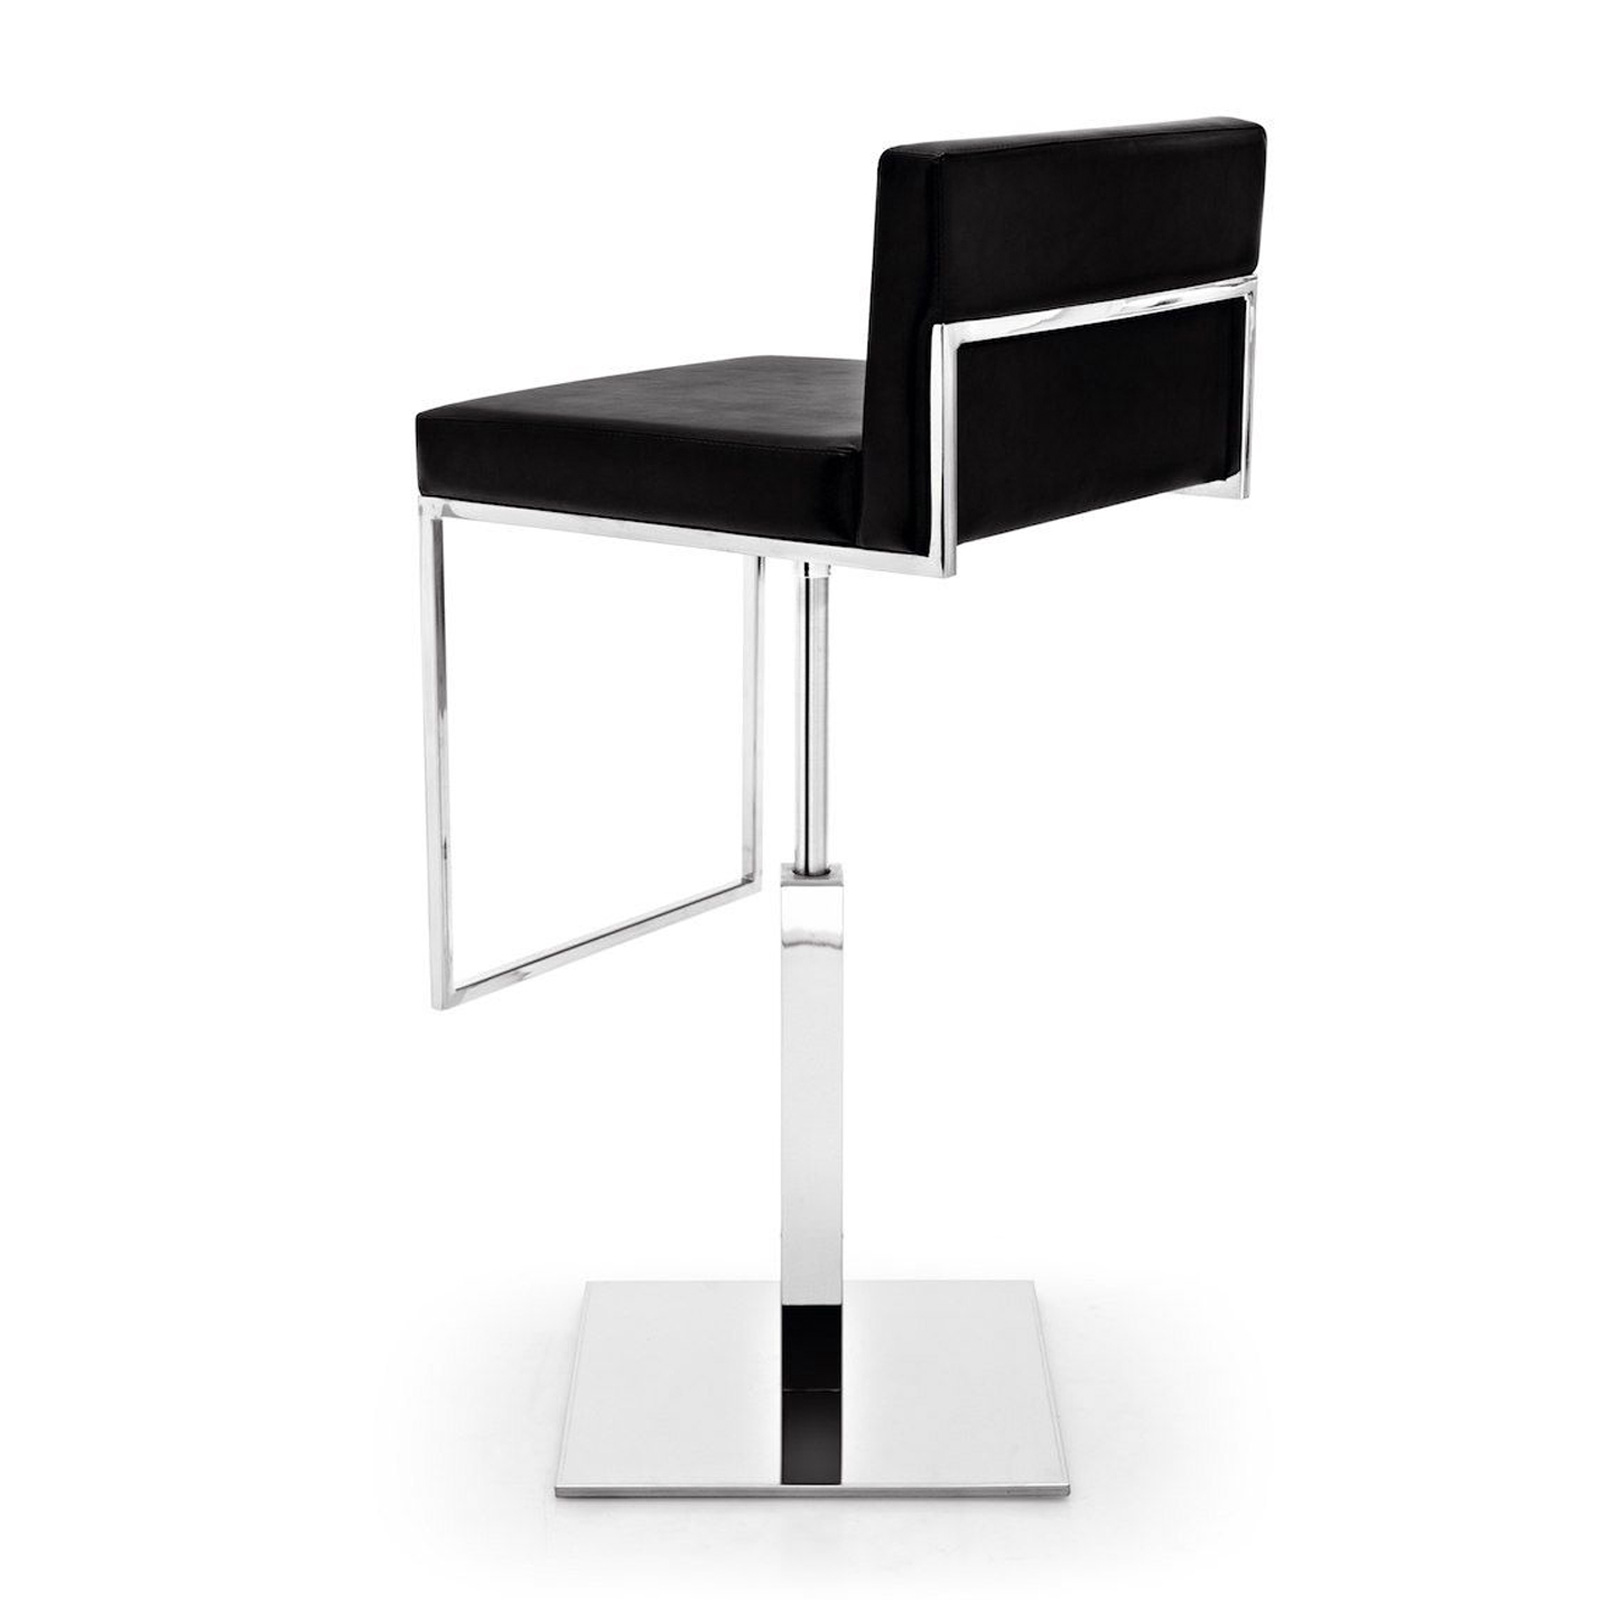 EVEN ADJUSTABLE STOOL By Calligaris